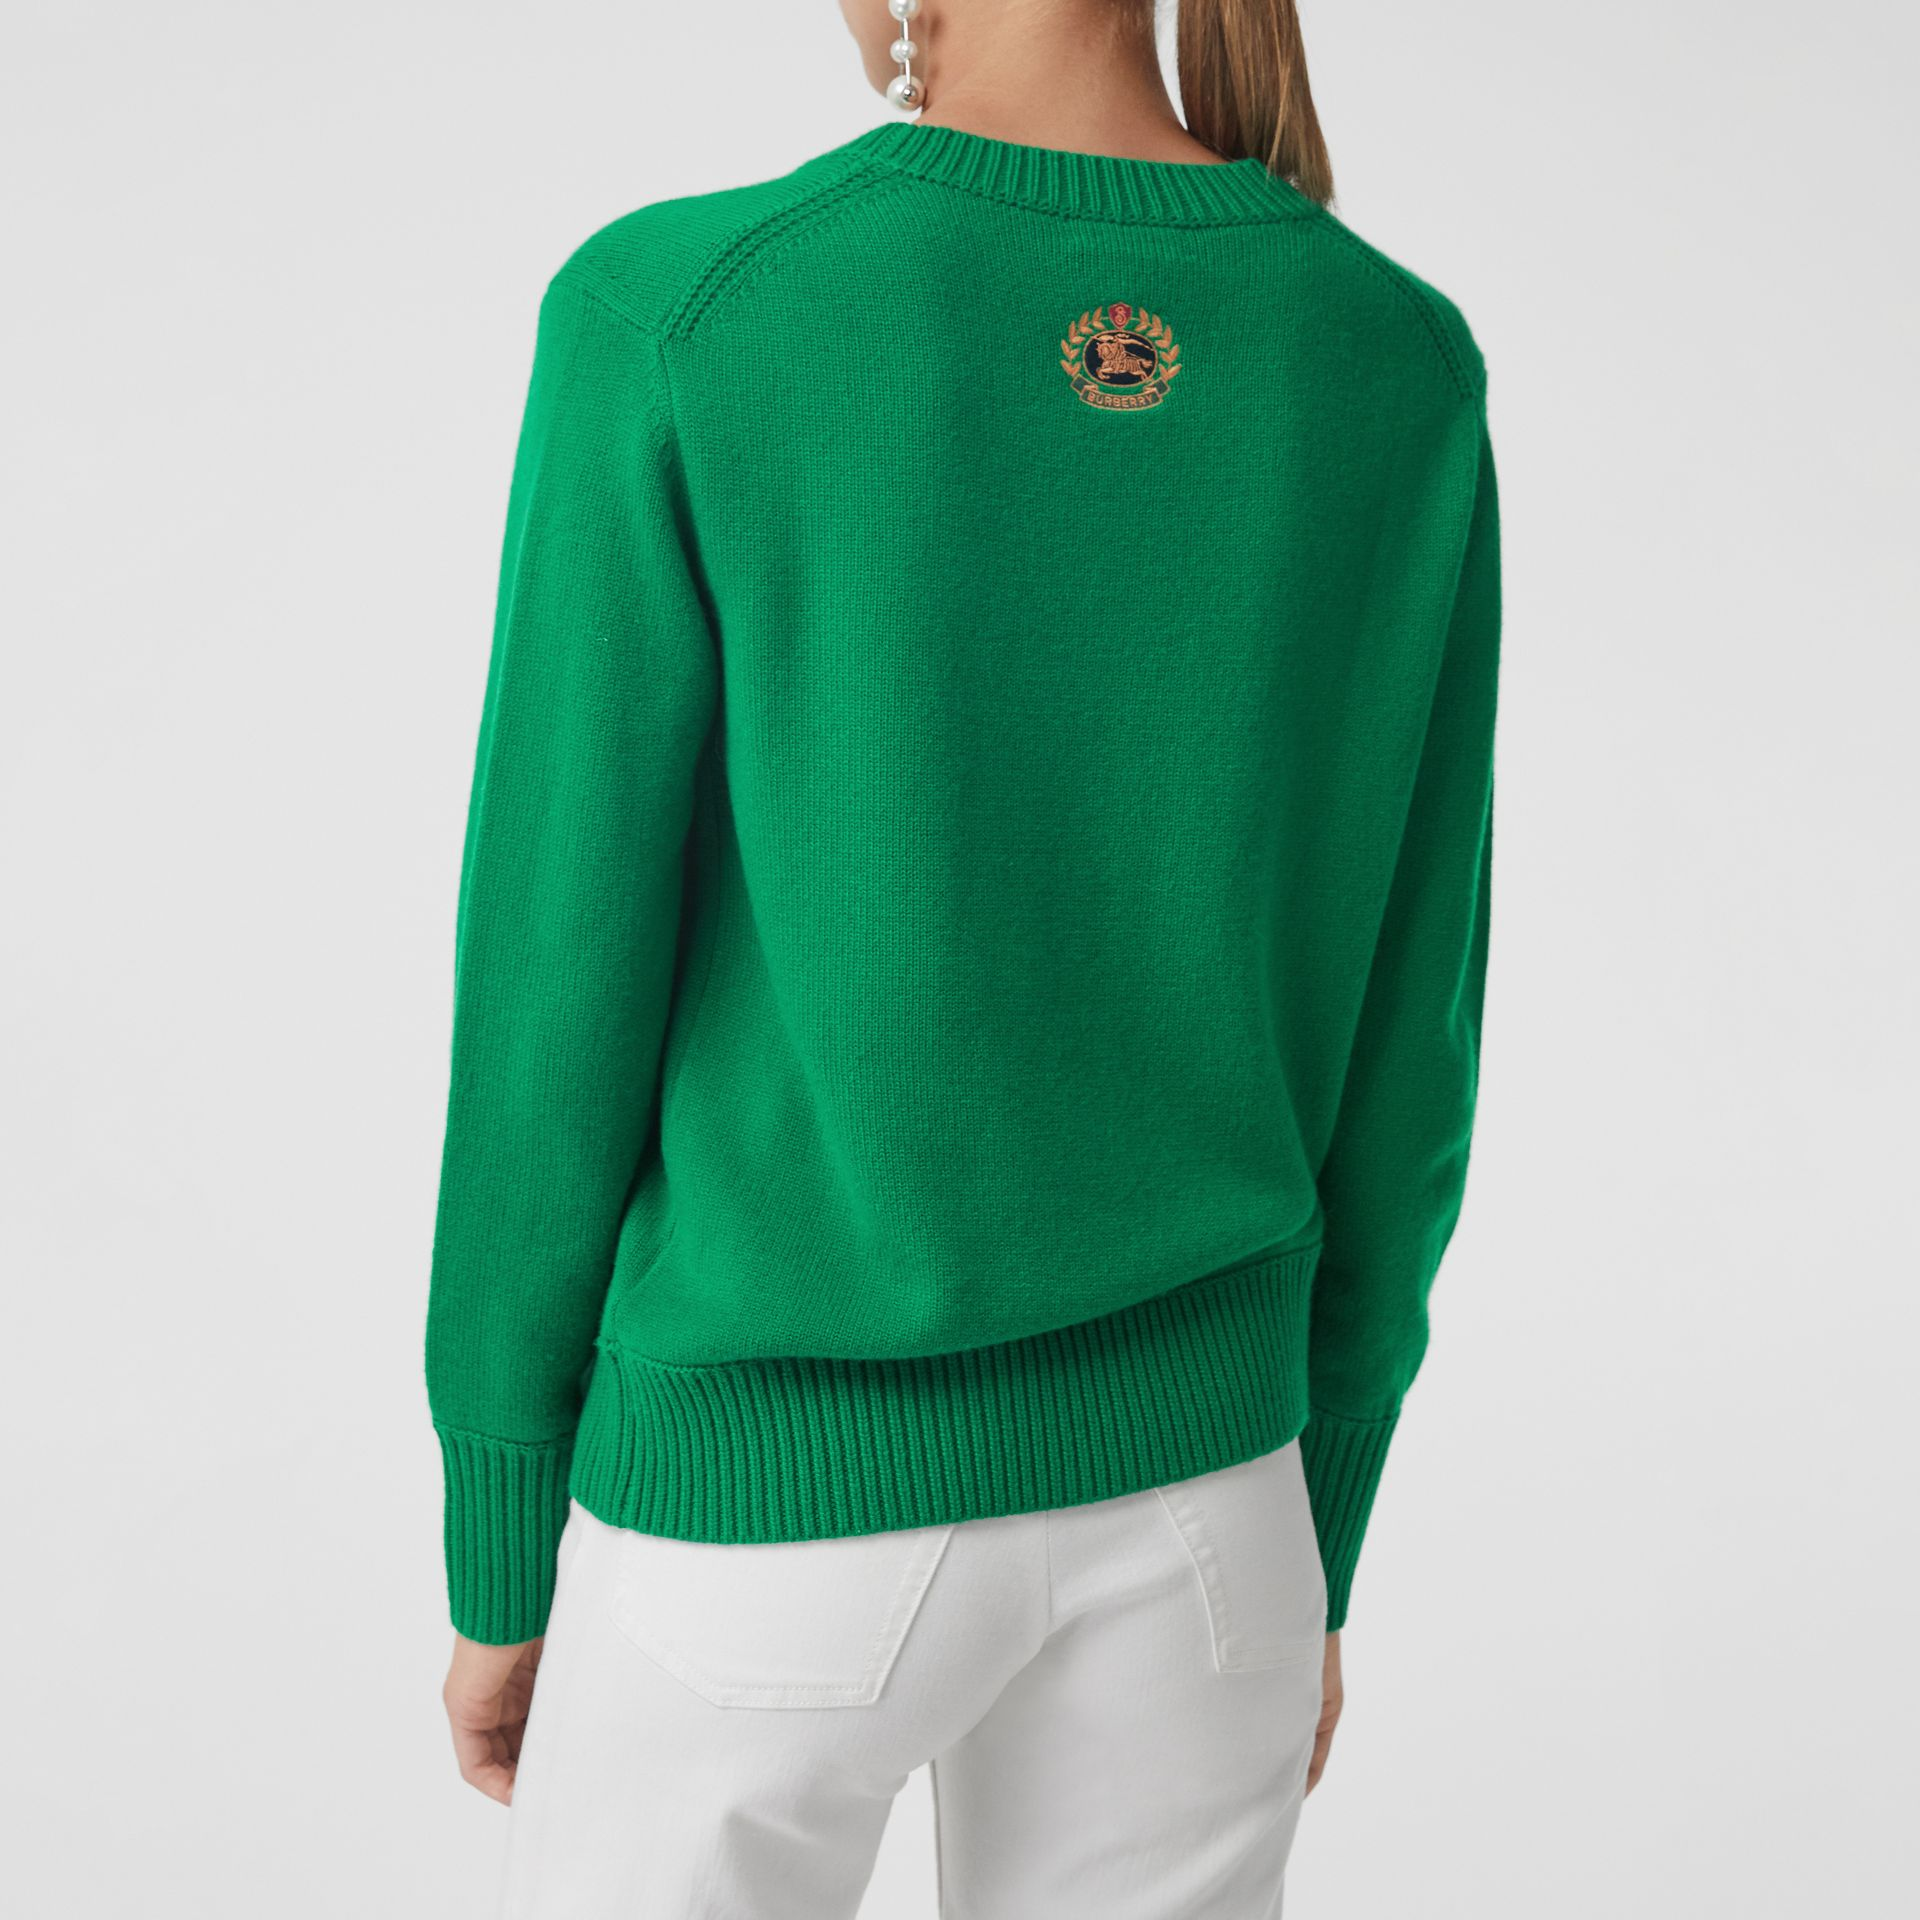 Archive Logo Appliqué Cashmere Sweater in Vibrant Green - Women | Burberry United States - gallery image 2